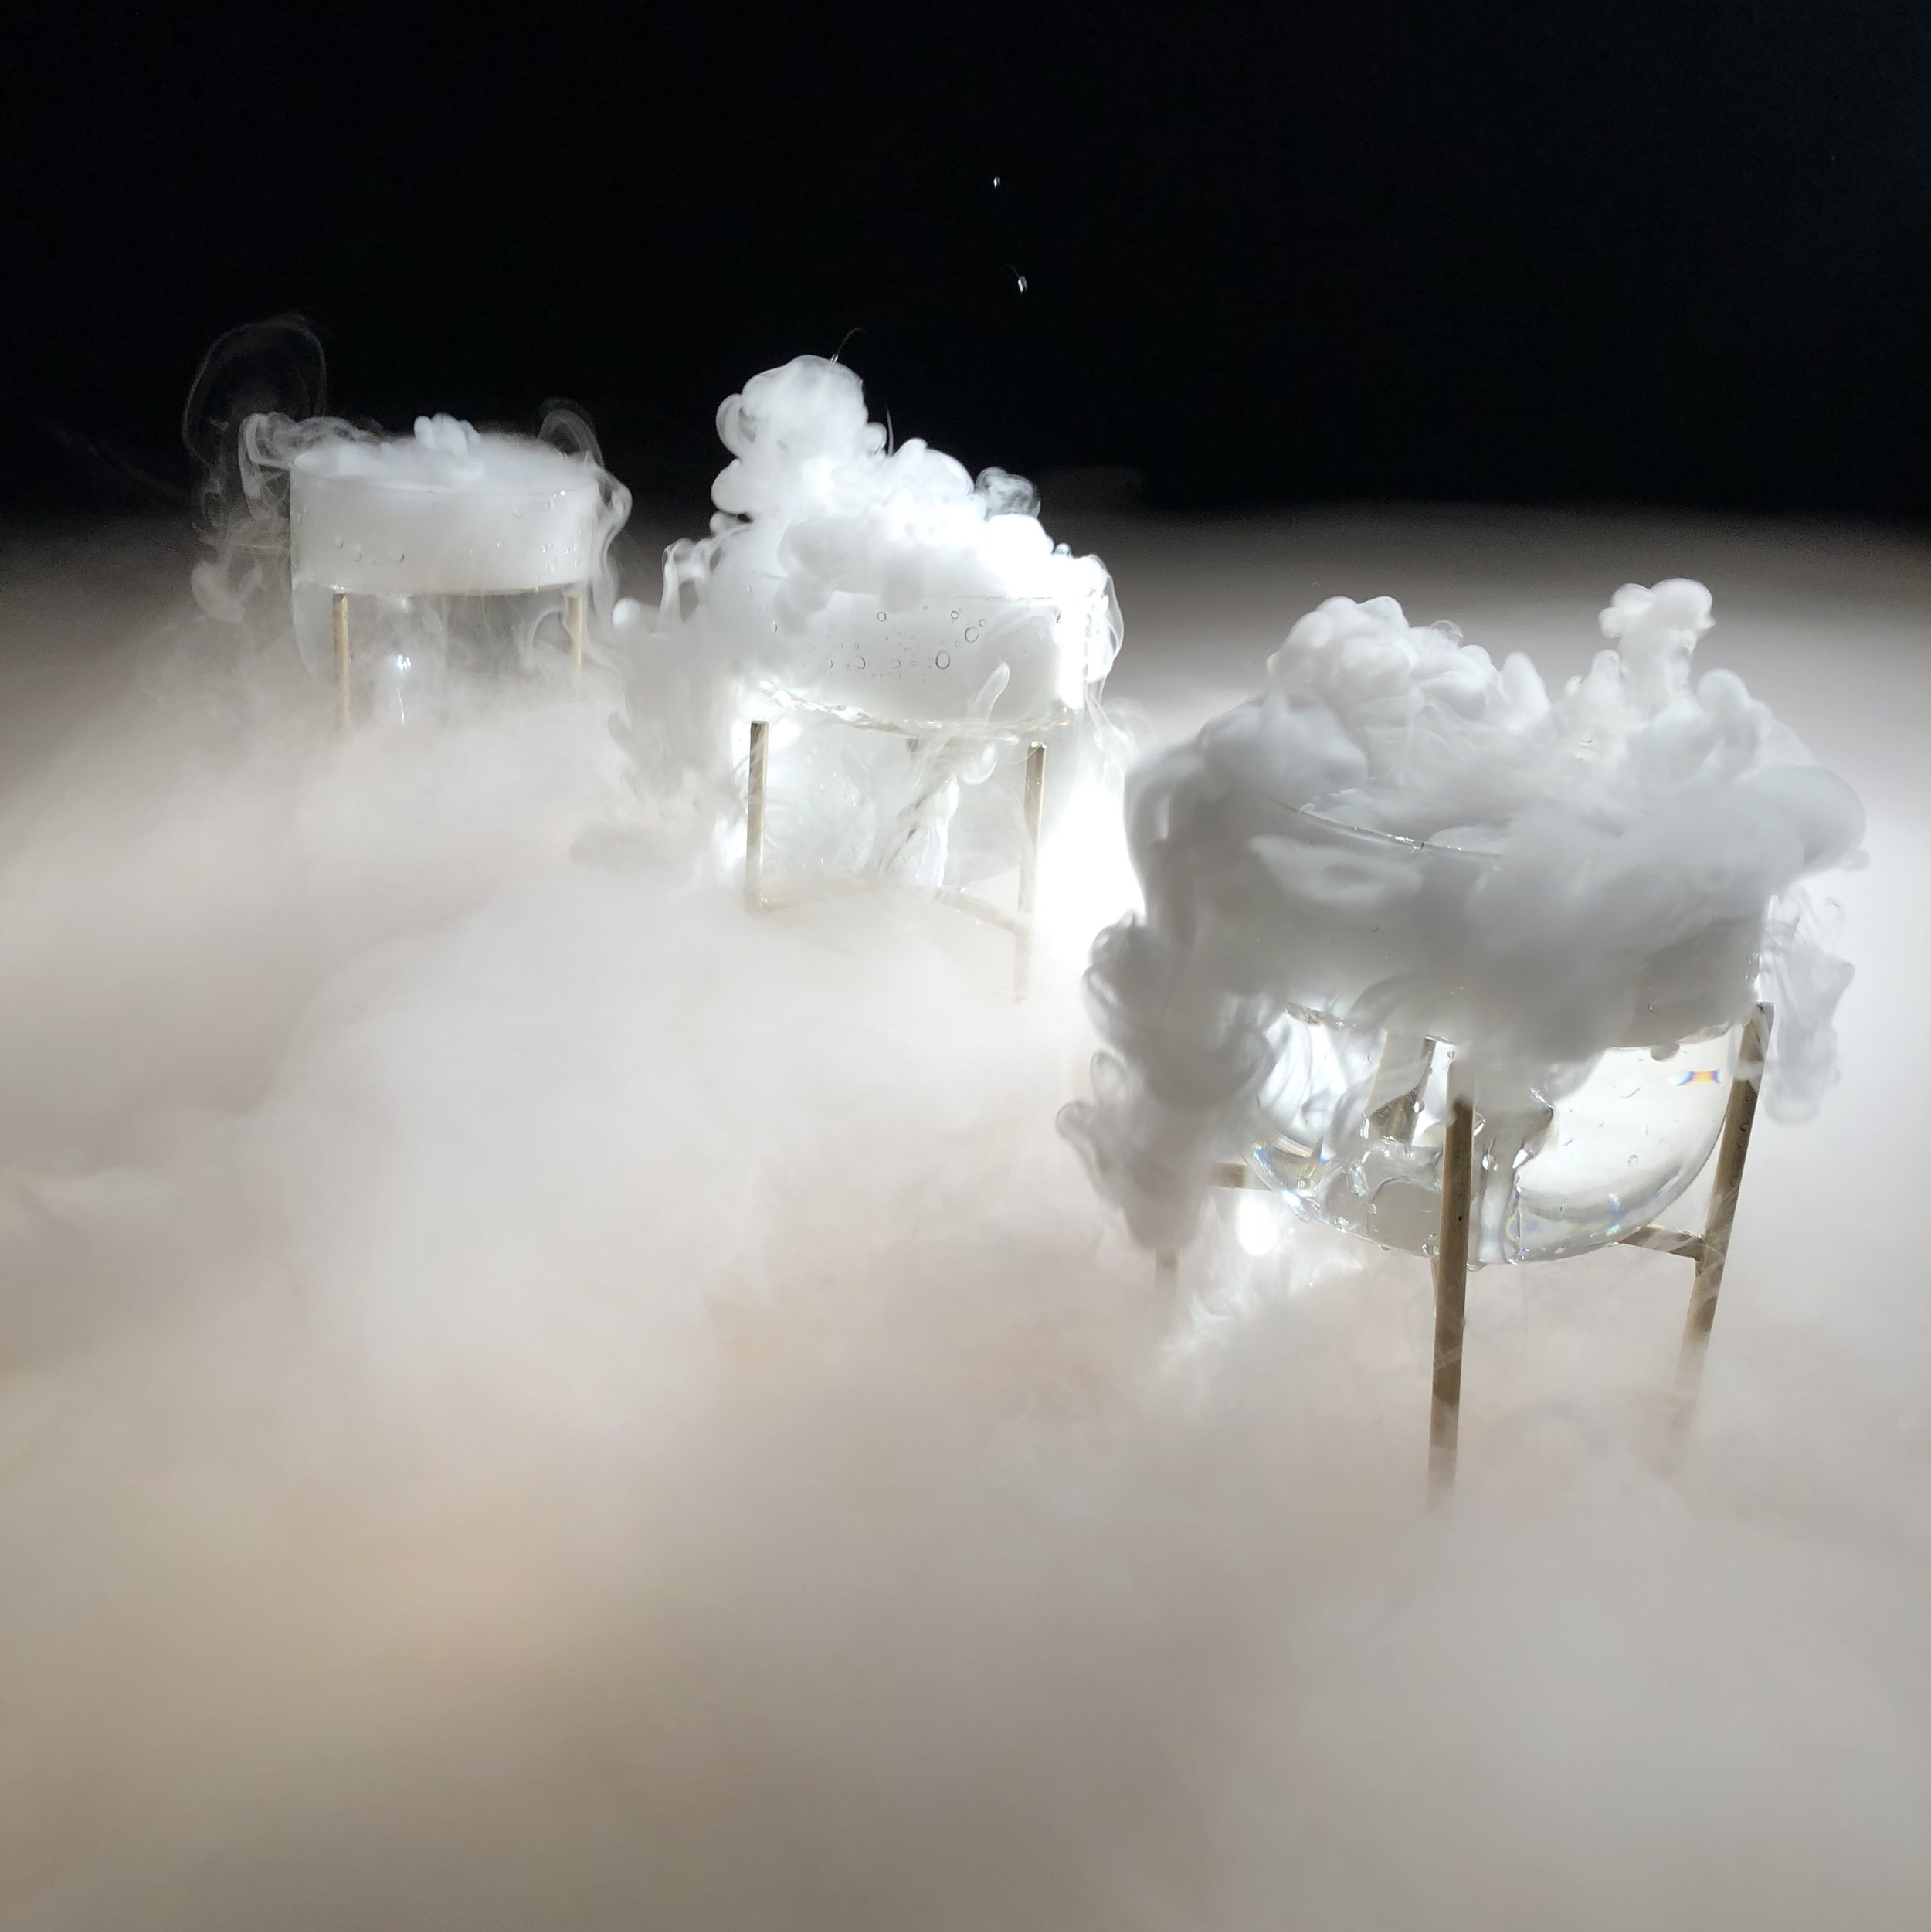 Experiments with using, photographing, filming and recording the sounds of dry ice.